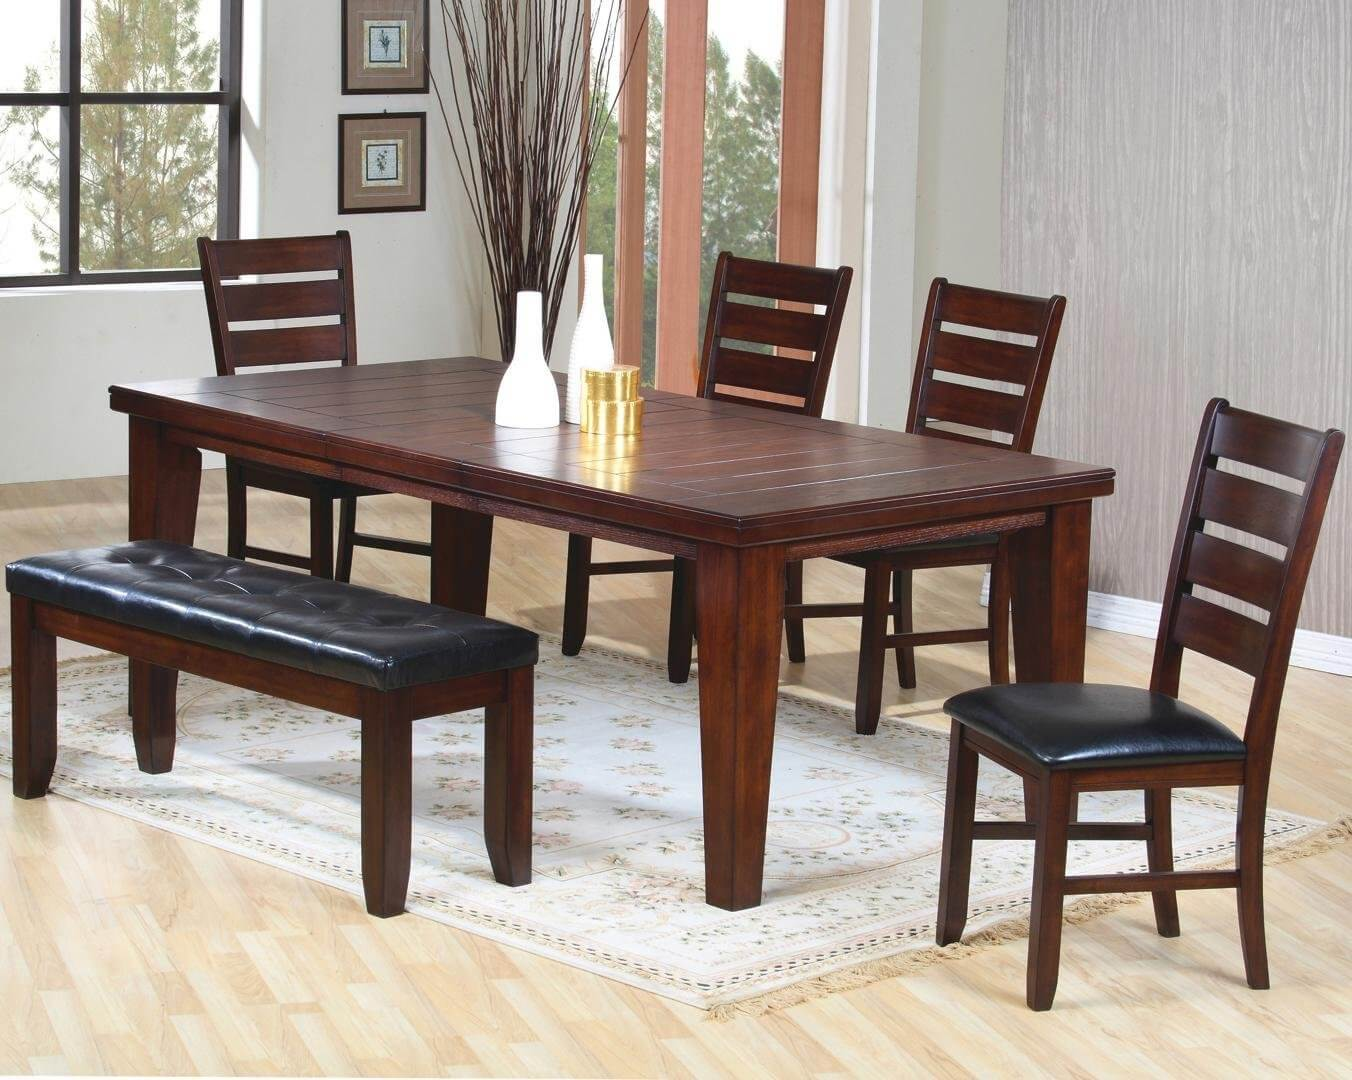 26 Dining Room Sets (Big and Small) with Bench Seating (2019)